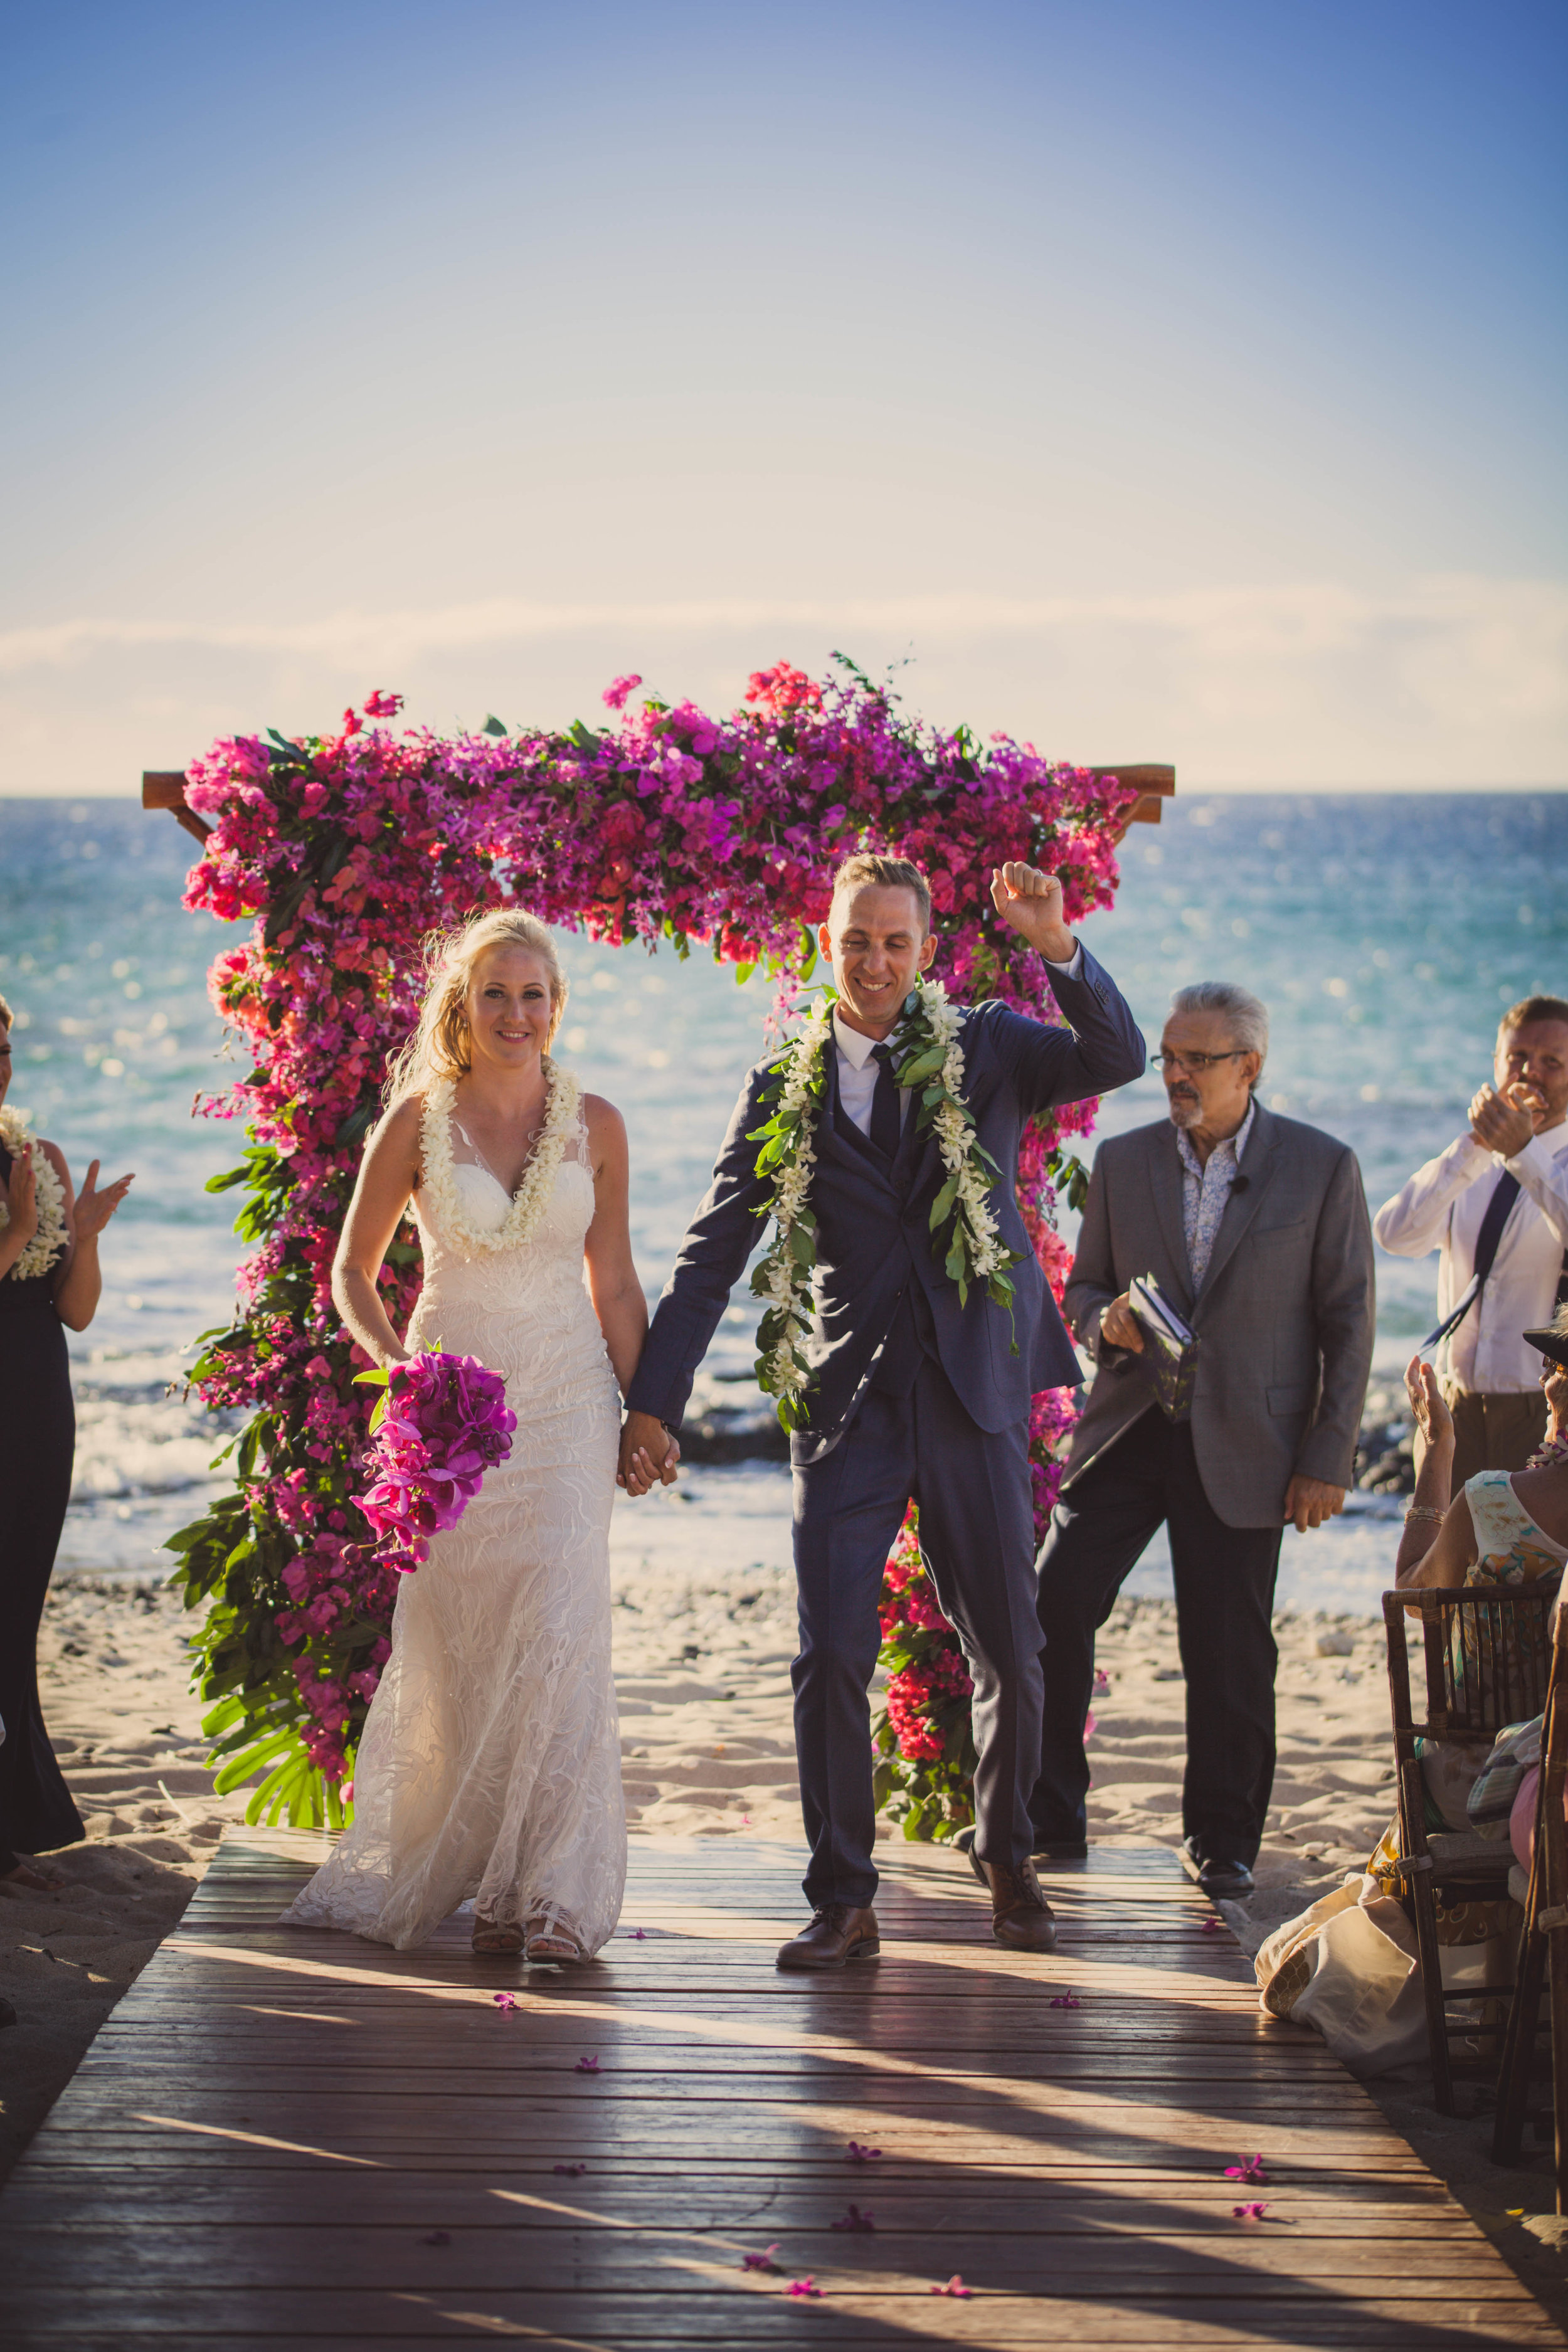 big island hawaii fairmont orchid beach wedding © kelilina photography 20170812175118-1.jpg